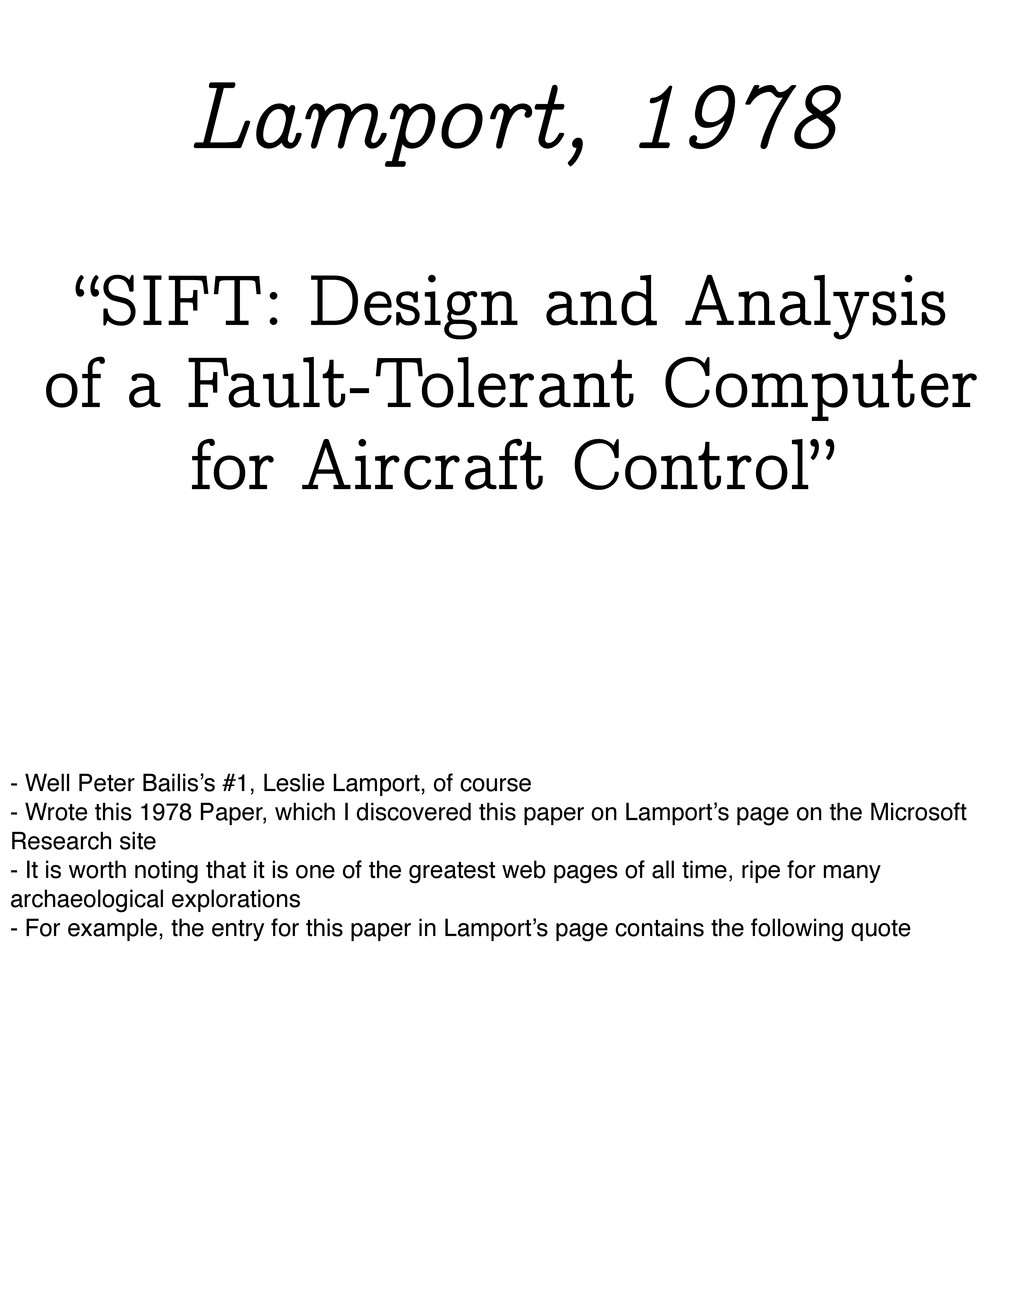 """""""SIFT: Design and Analysis of a Fault-Tolerant ..."""